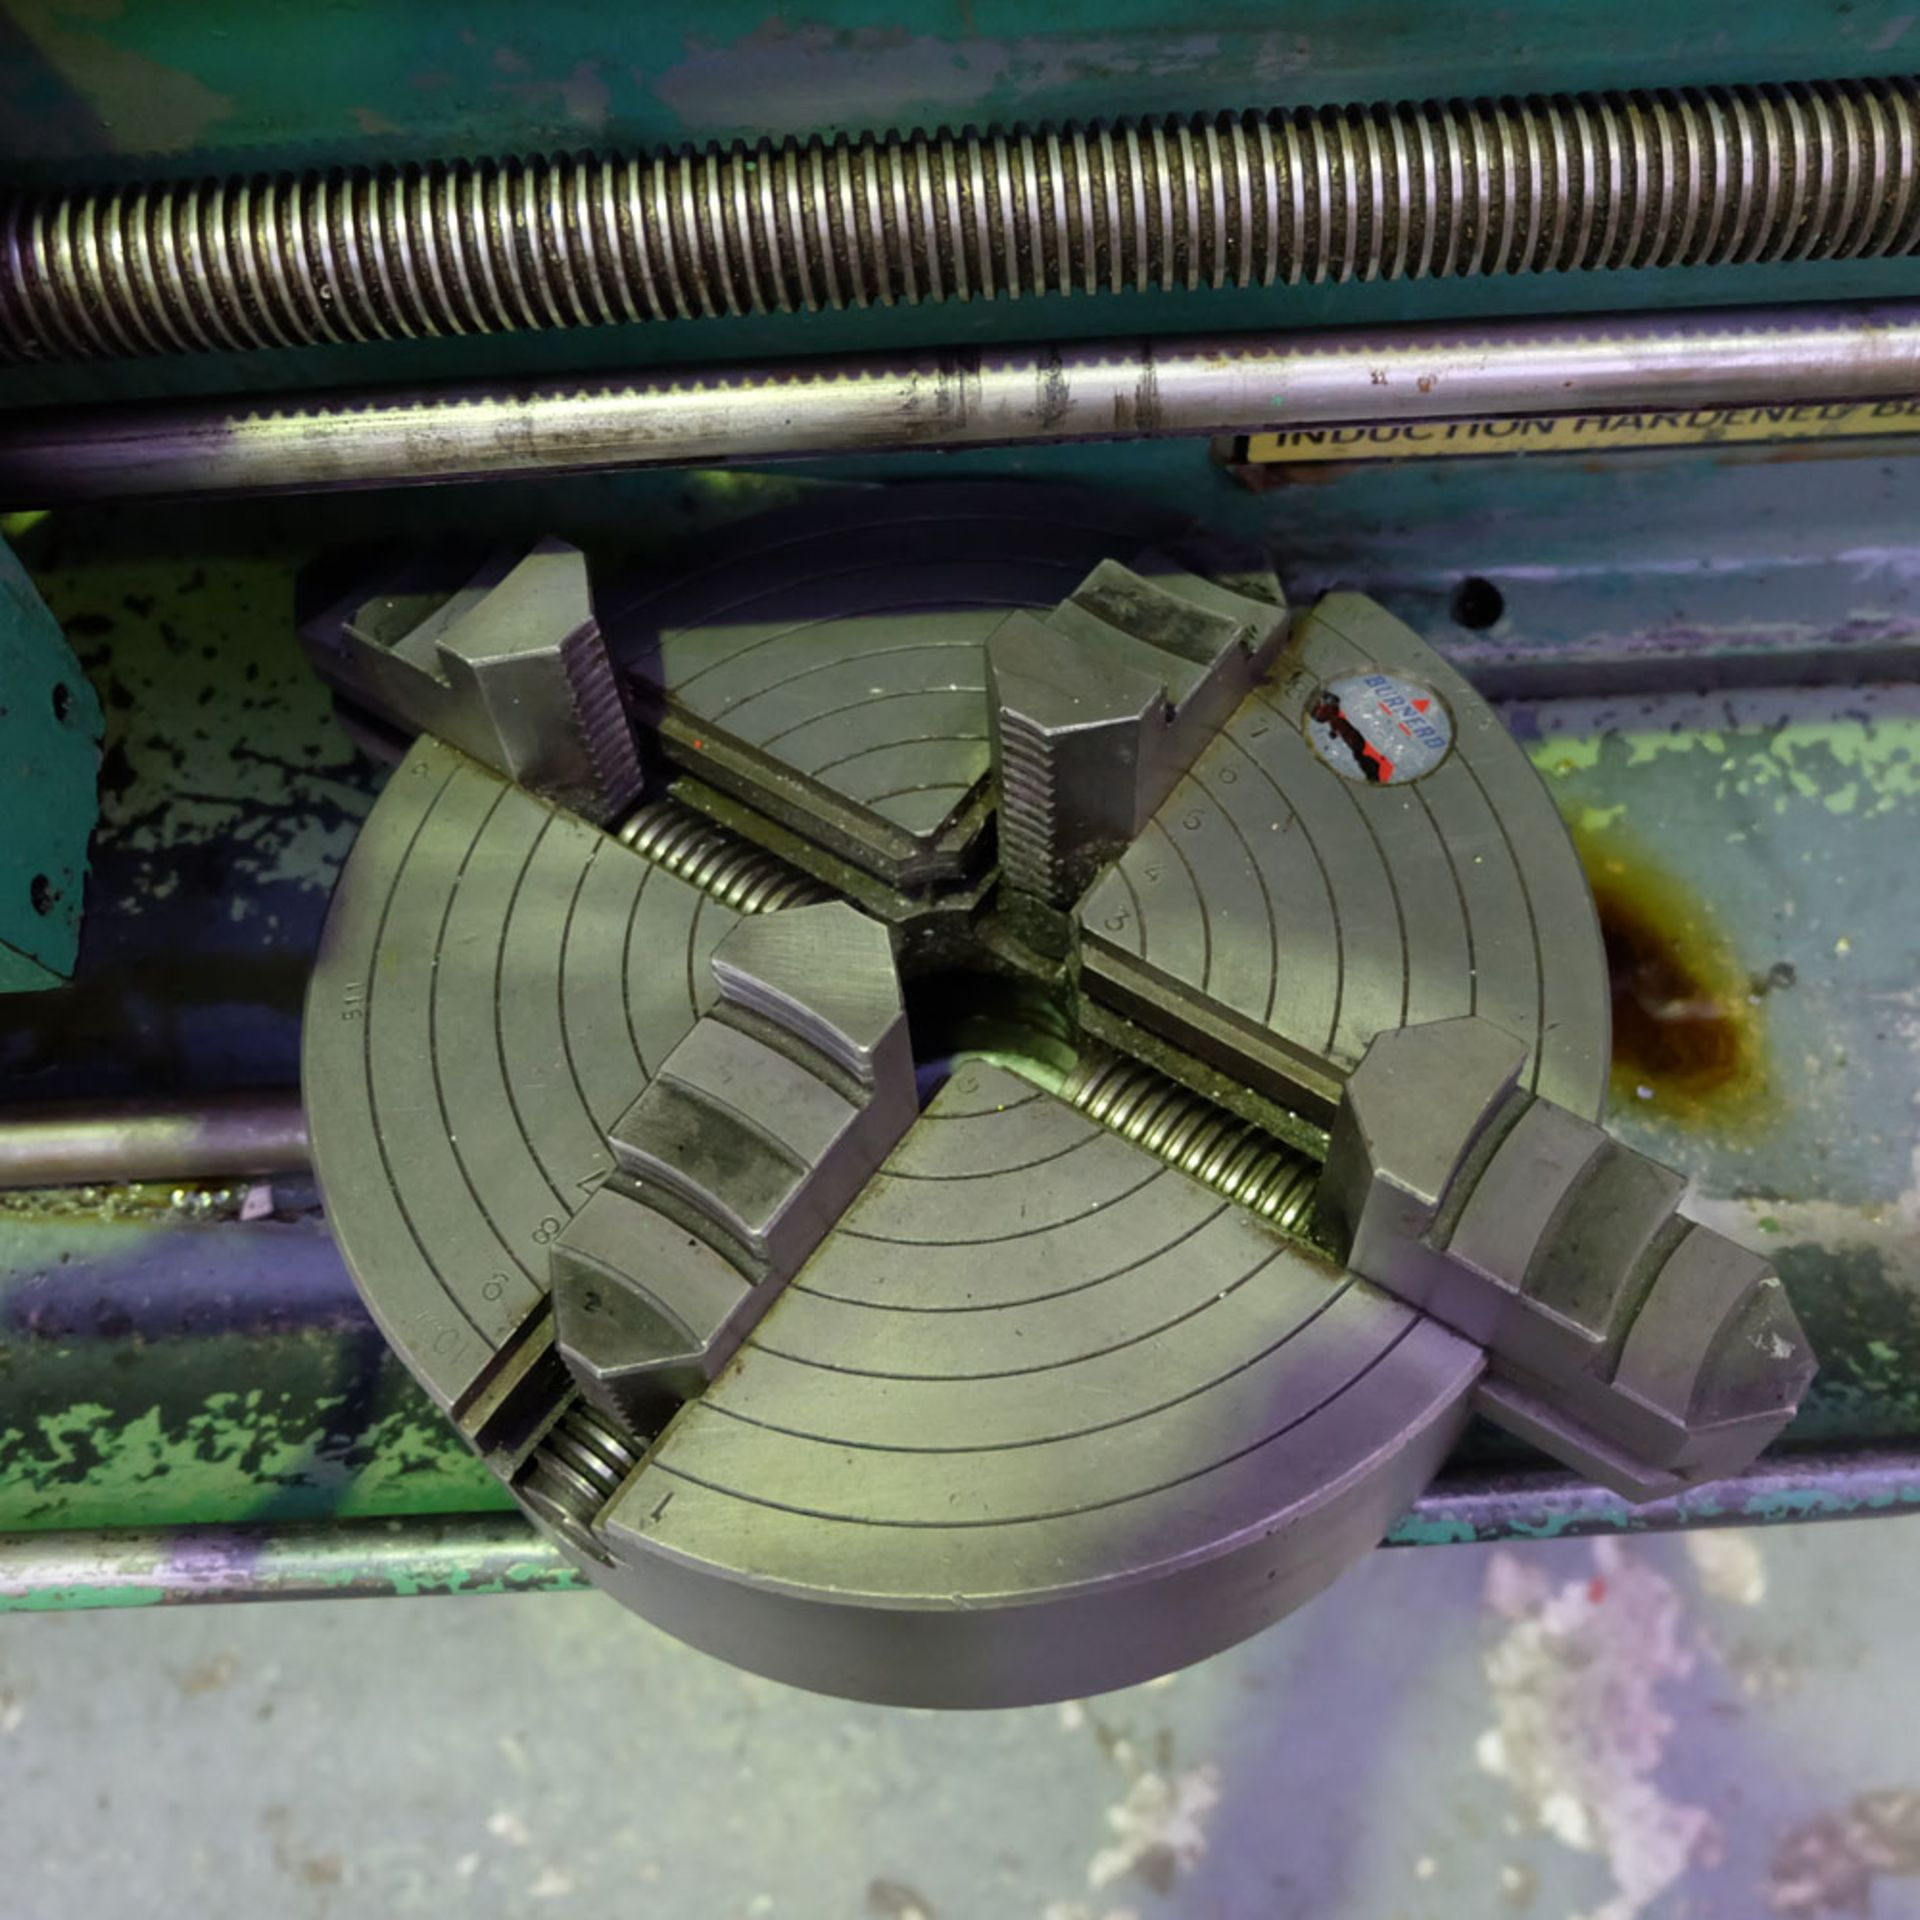 Colchester Student Roundhead Centre Lathe - Image 6 of 8